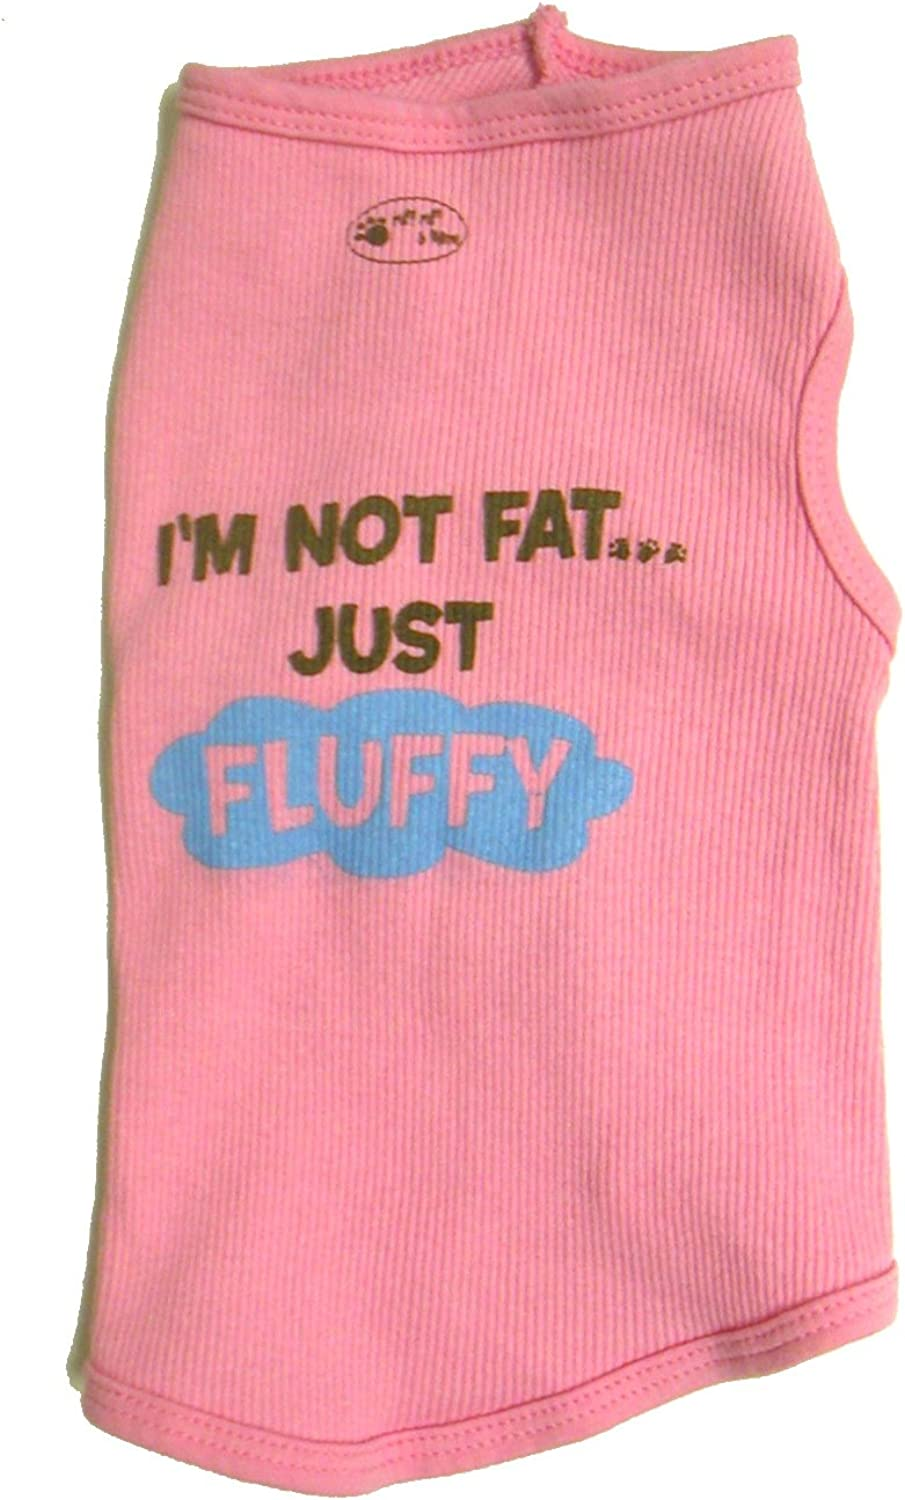 Ruff Ruff and Meow ExtraSmall Doggie Tank Top, I'm Not Fat Just Fluffy, Pink